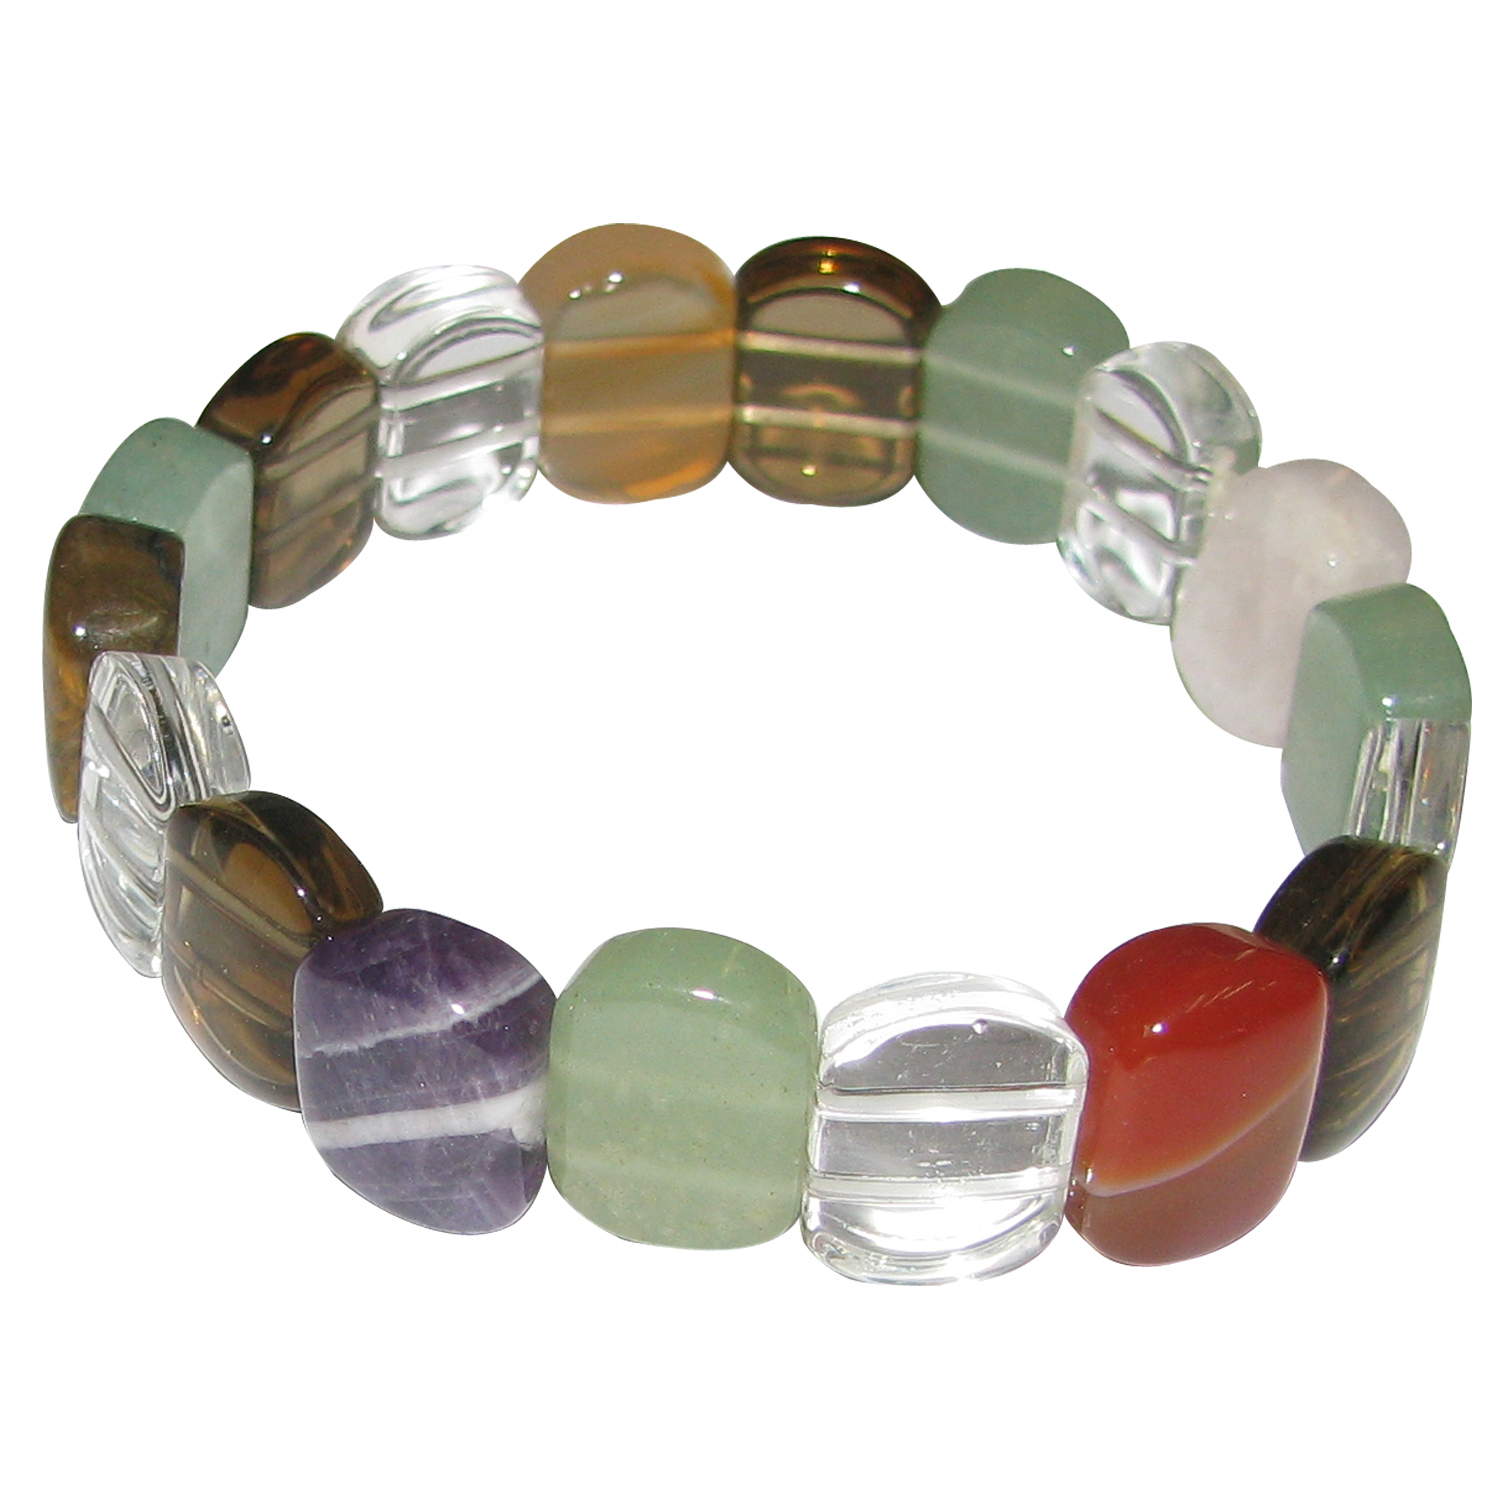 healing stones beginnings new esteem mala yoga jewelry bracelet self agate products moss energy